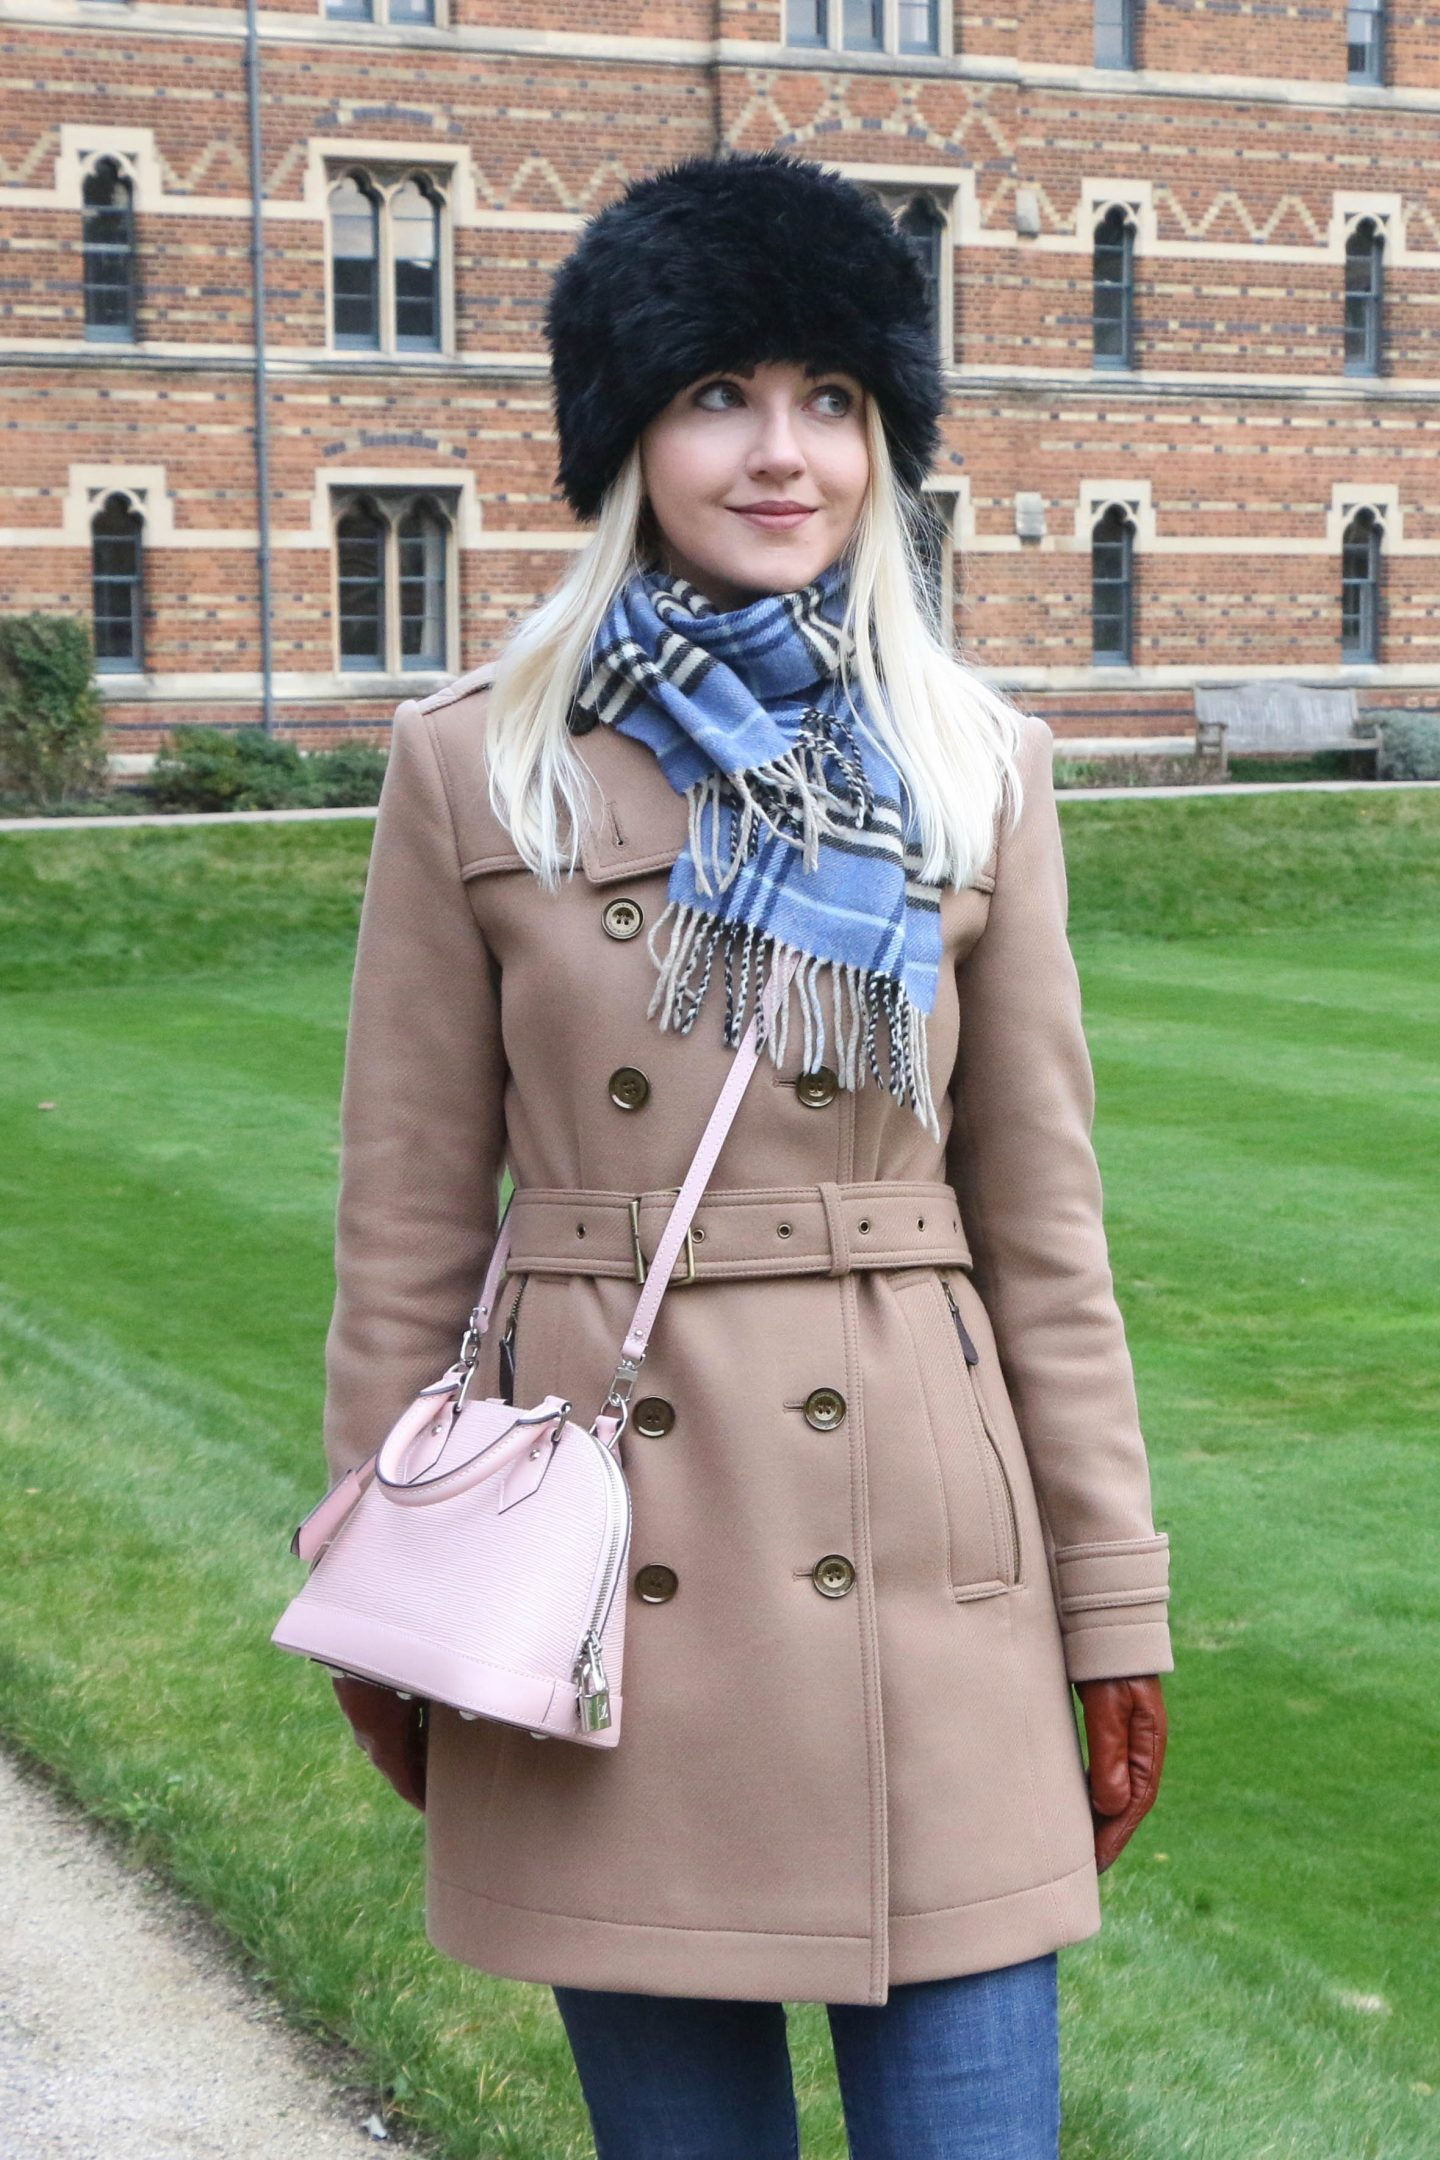 burberry coat from bicester village outlet